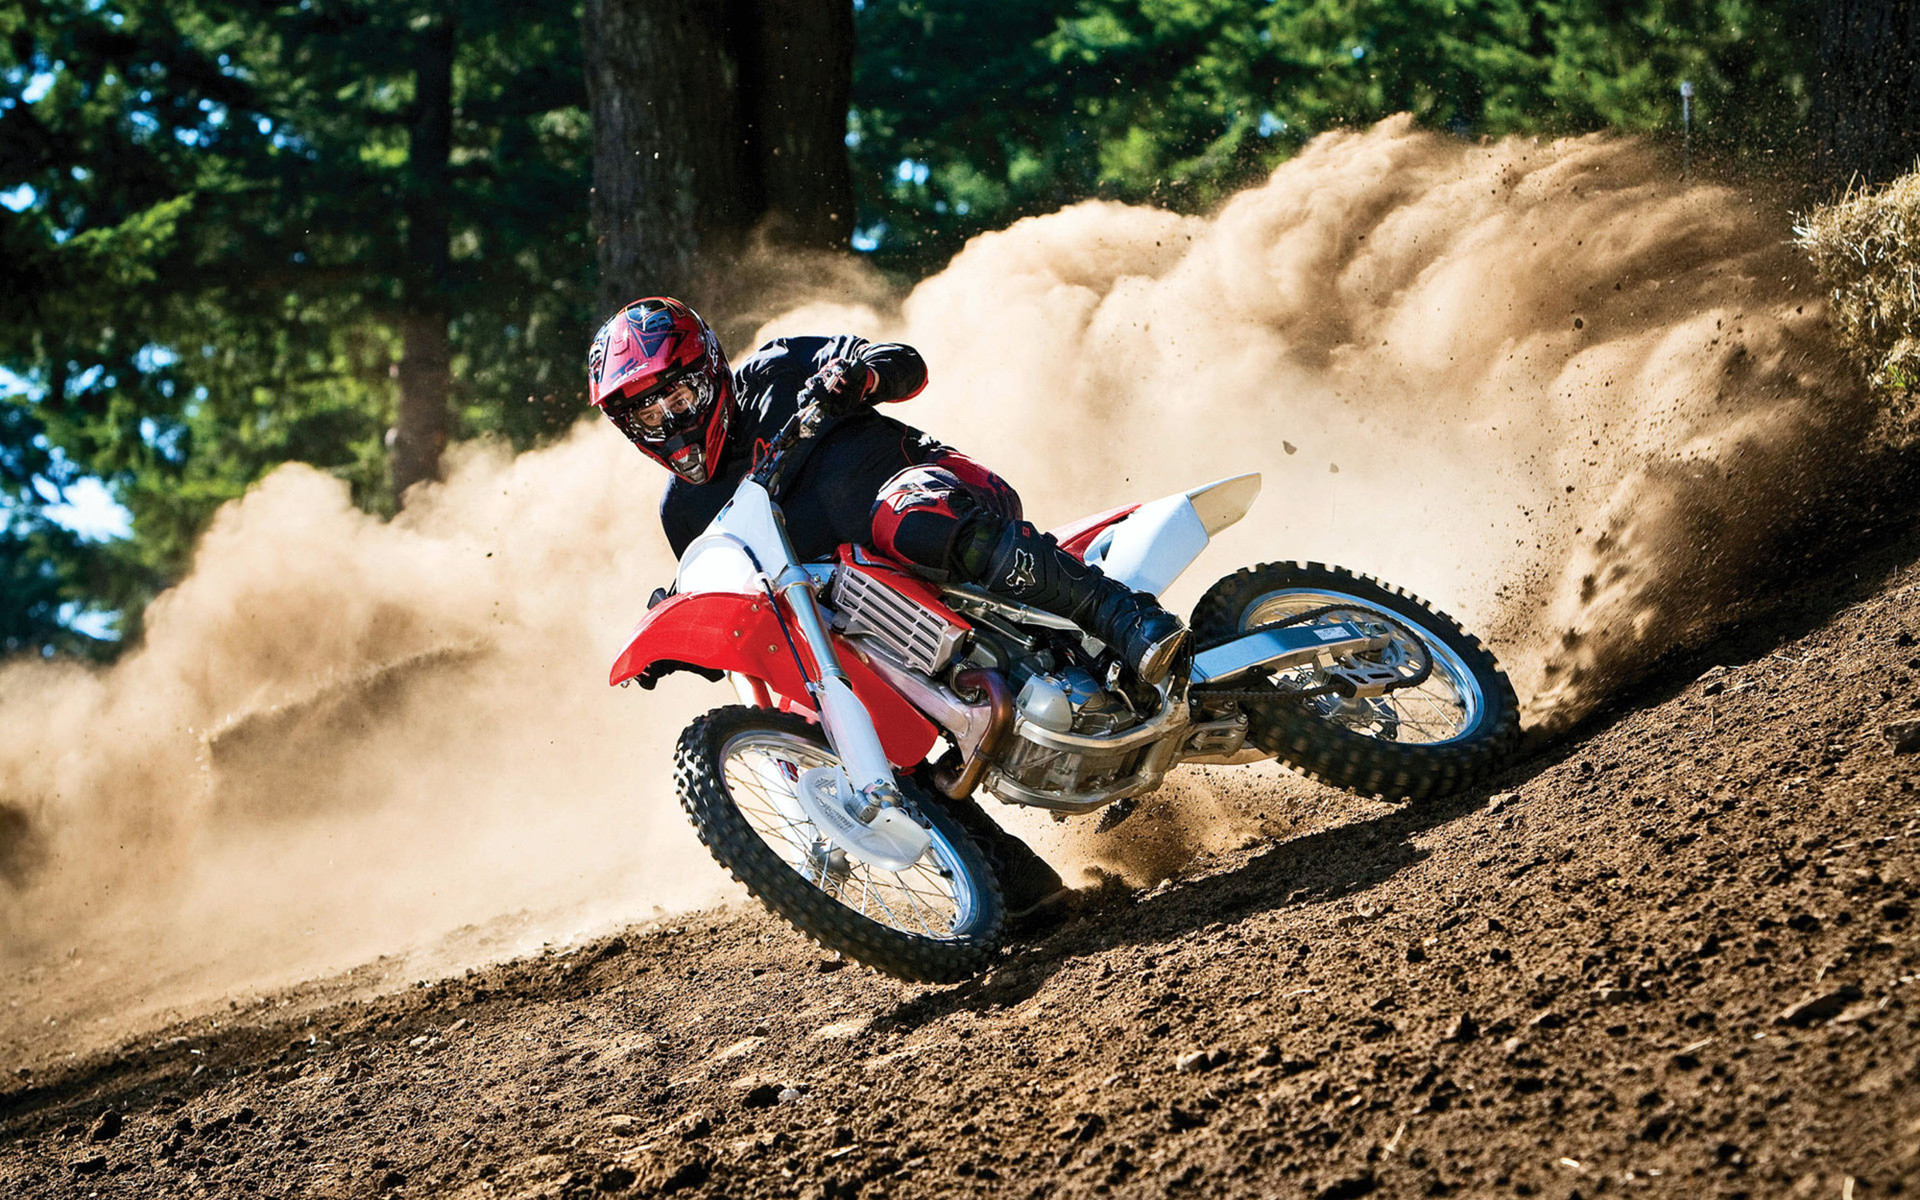 Motocross Bikes Wallpapers 63 Pictures